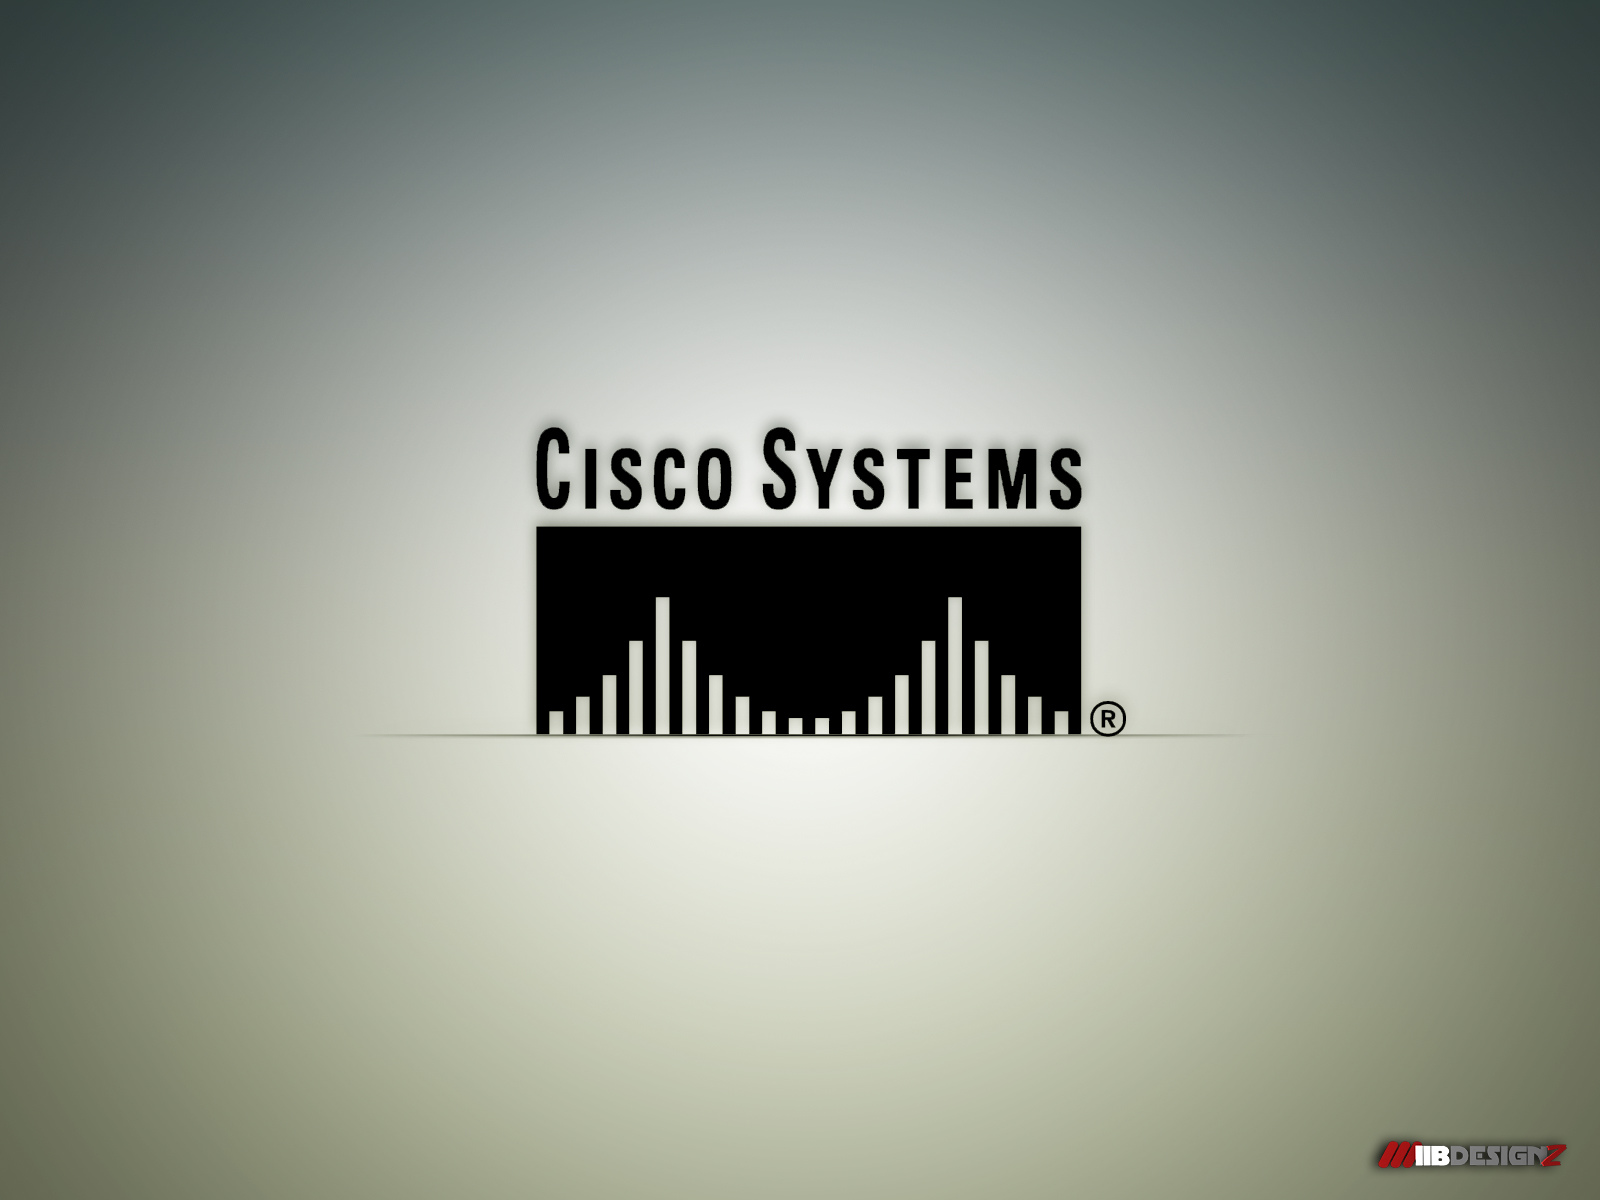 Linux Animated Wallpaper Cisco Systems Wallpapers Cisco Systems Stock Photos